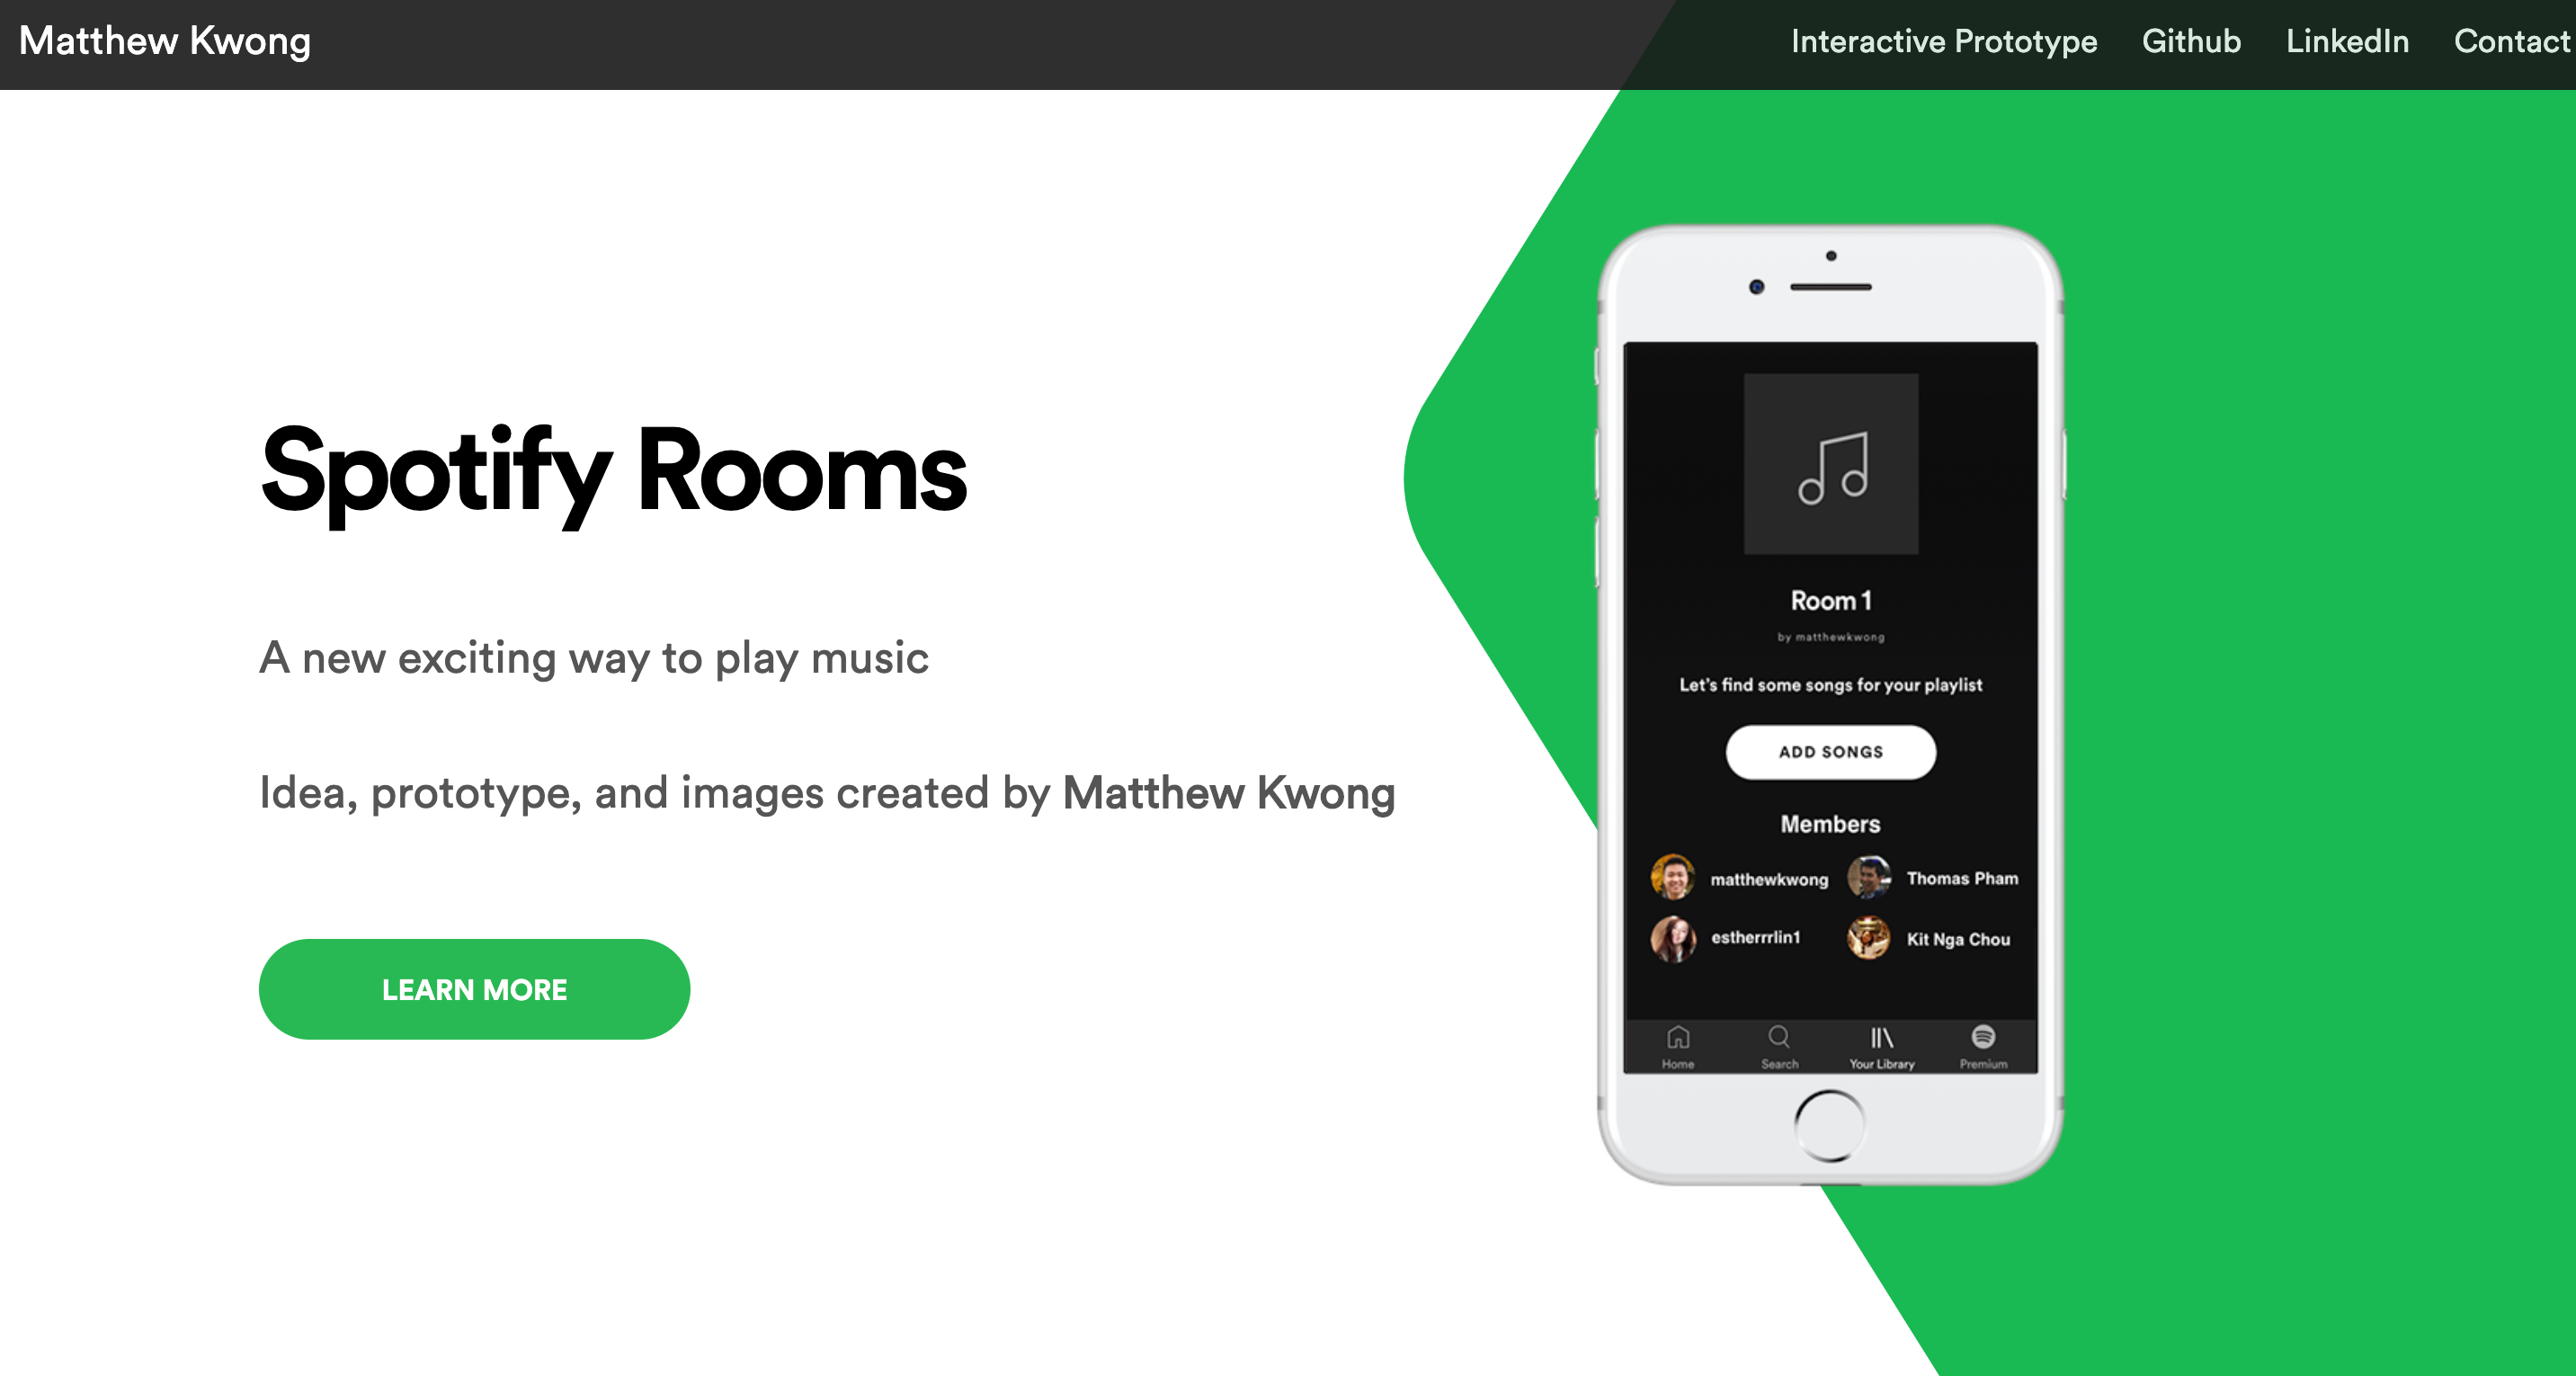 Spotify Rooms